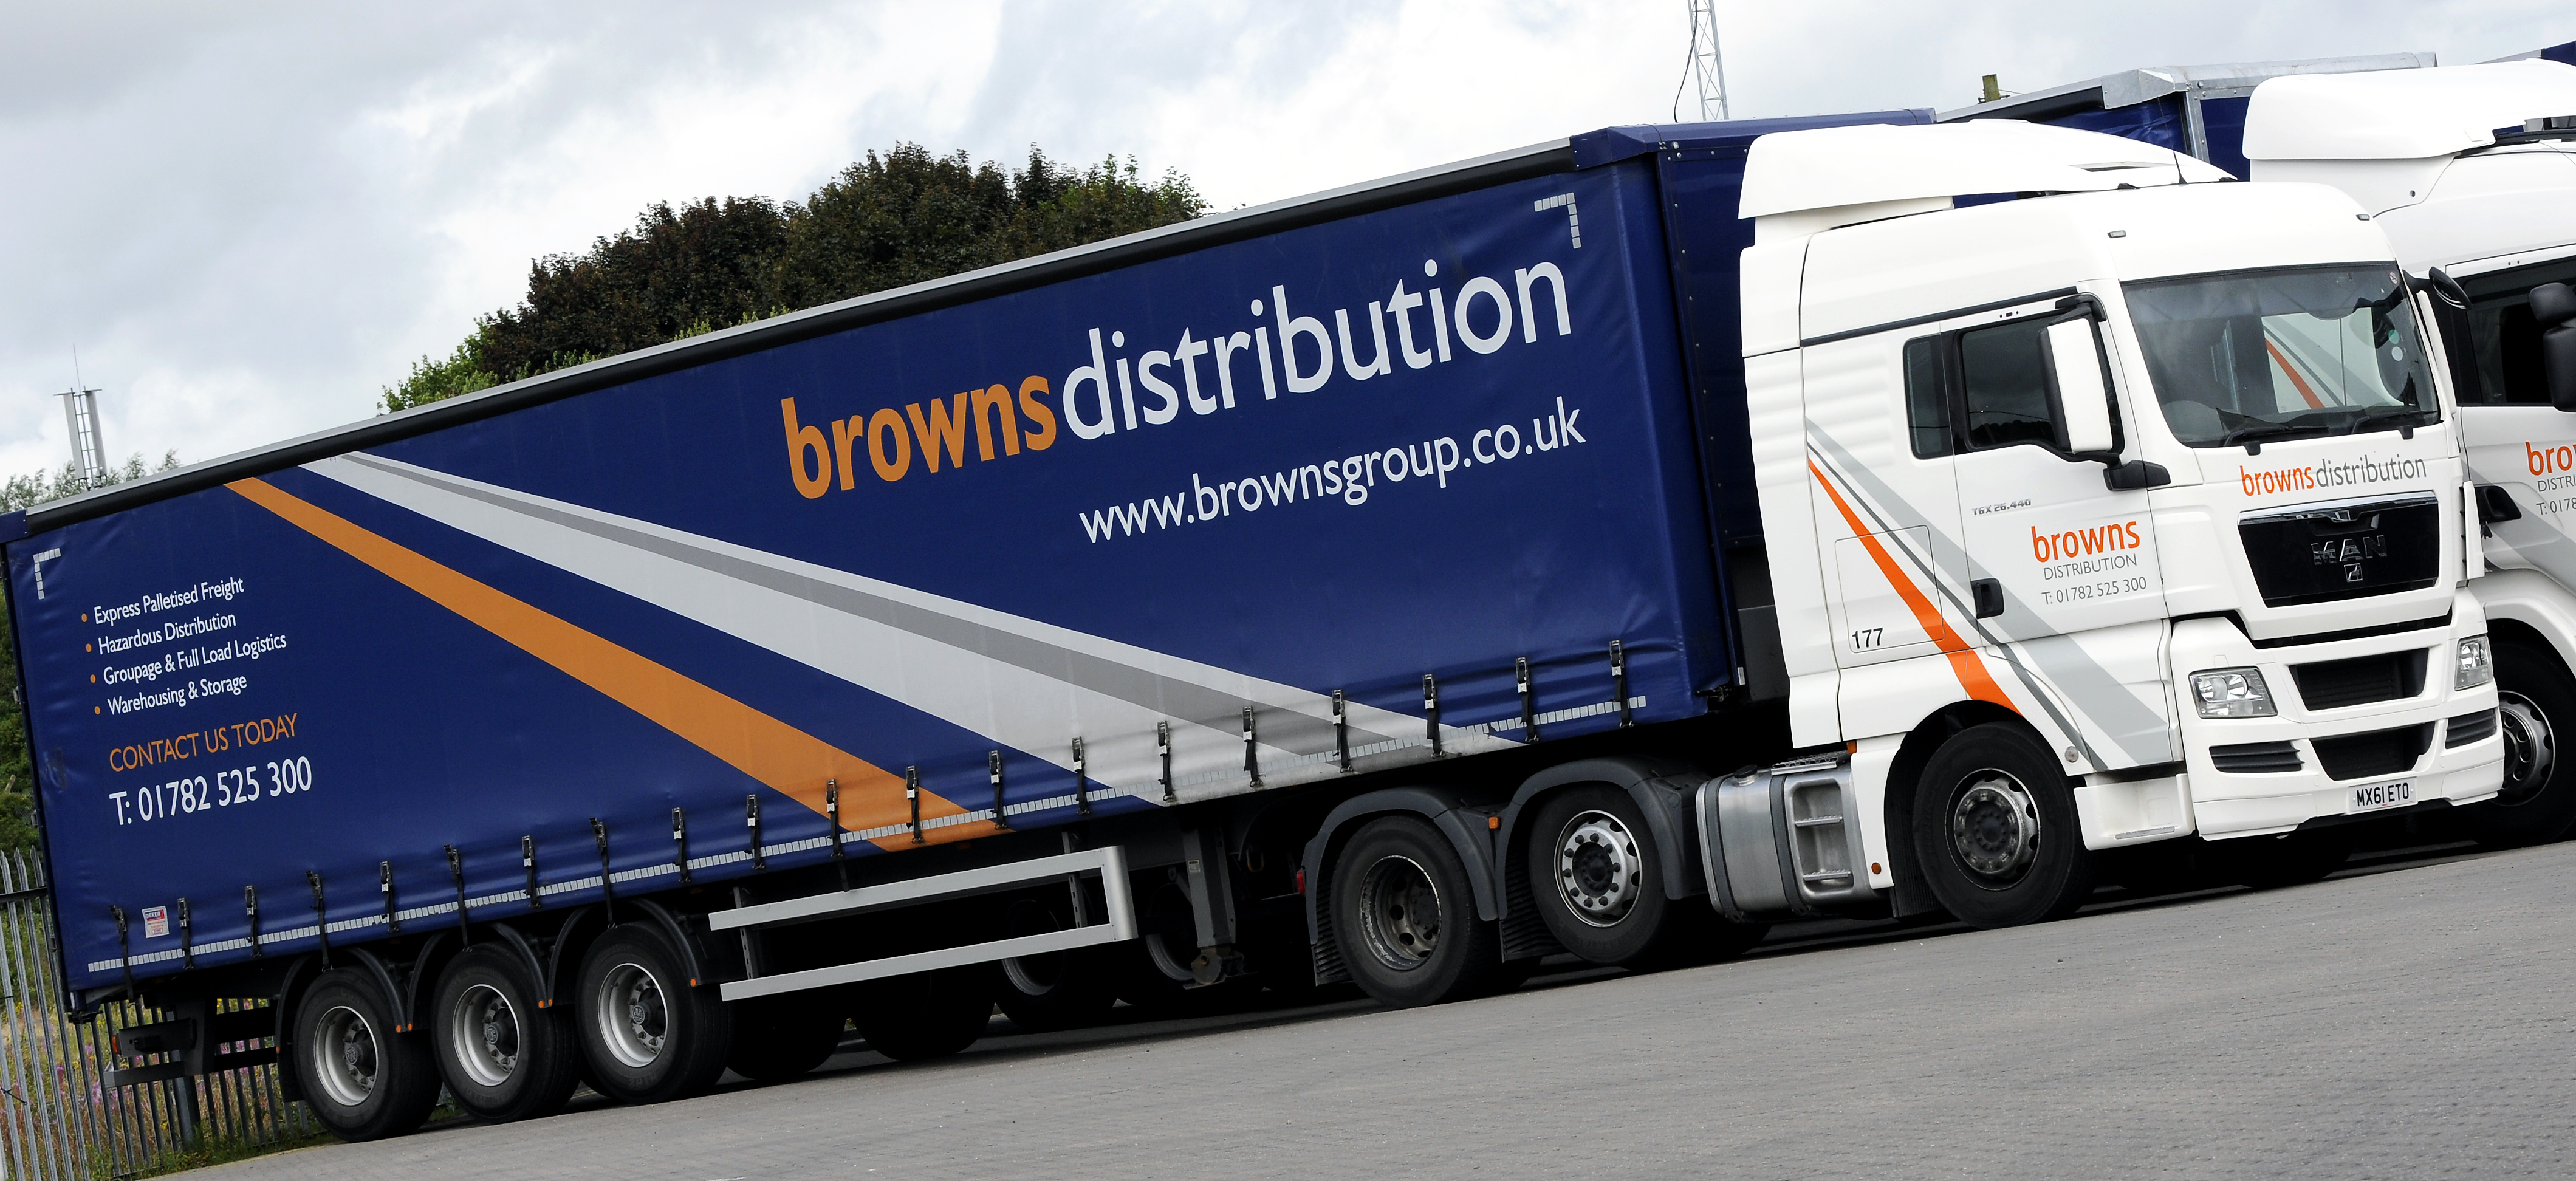 Browns Distribution Truck